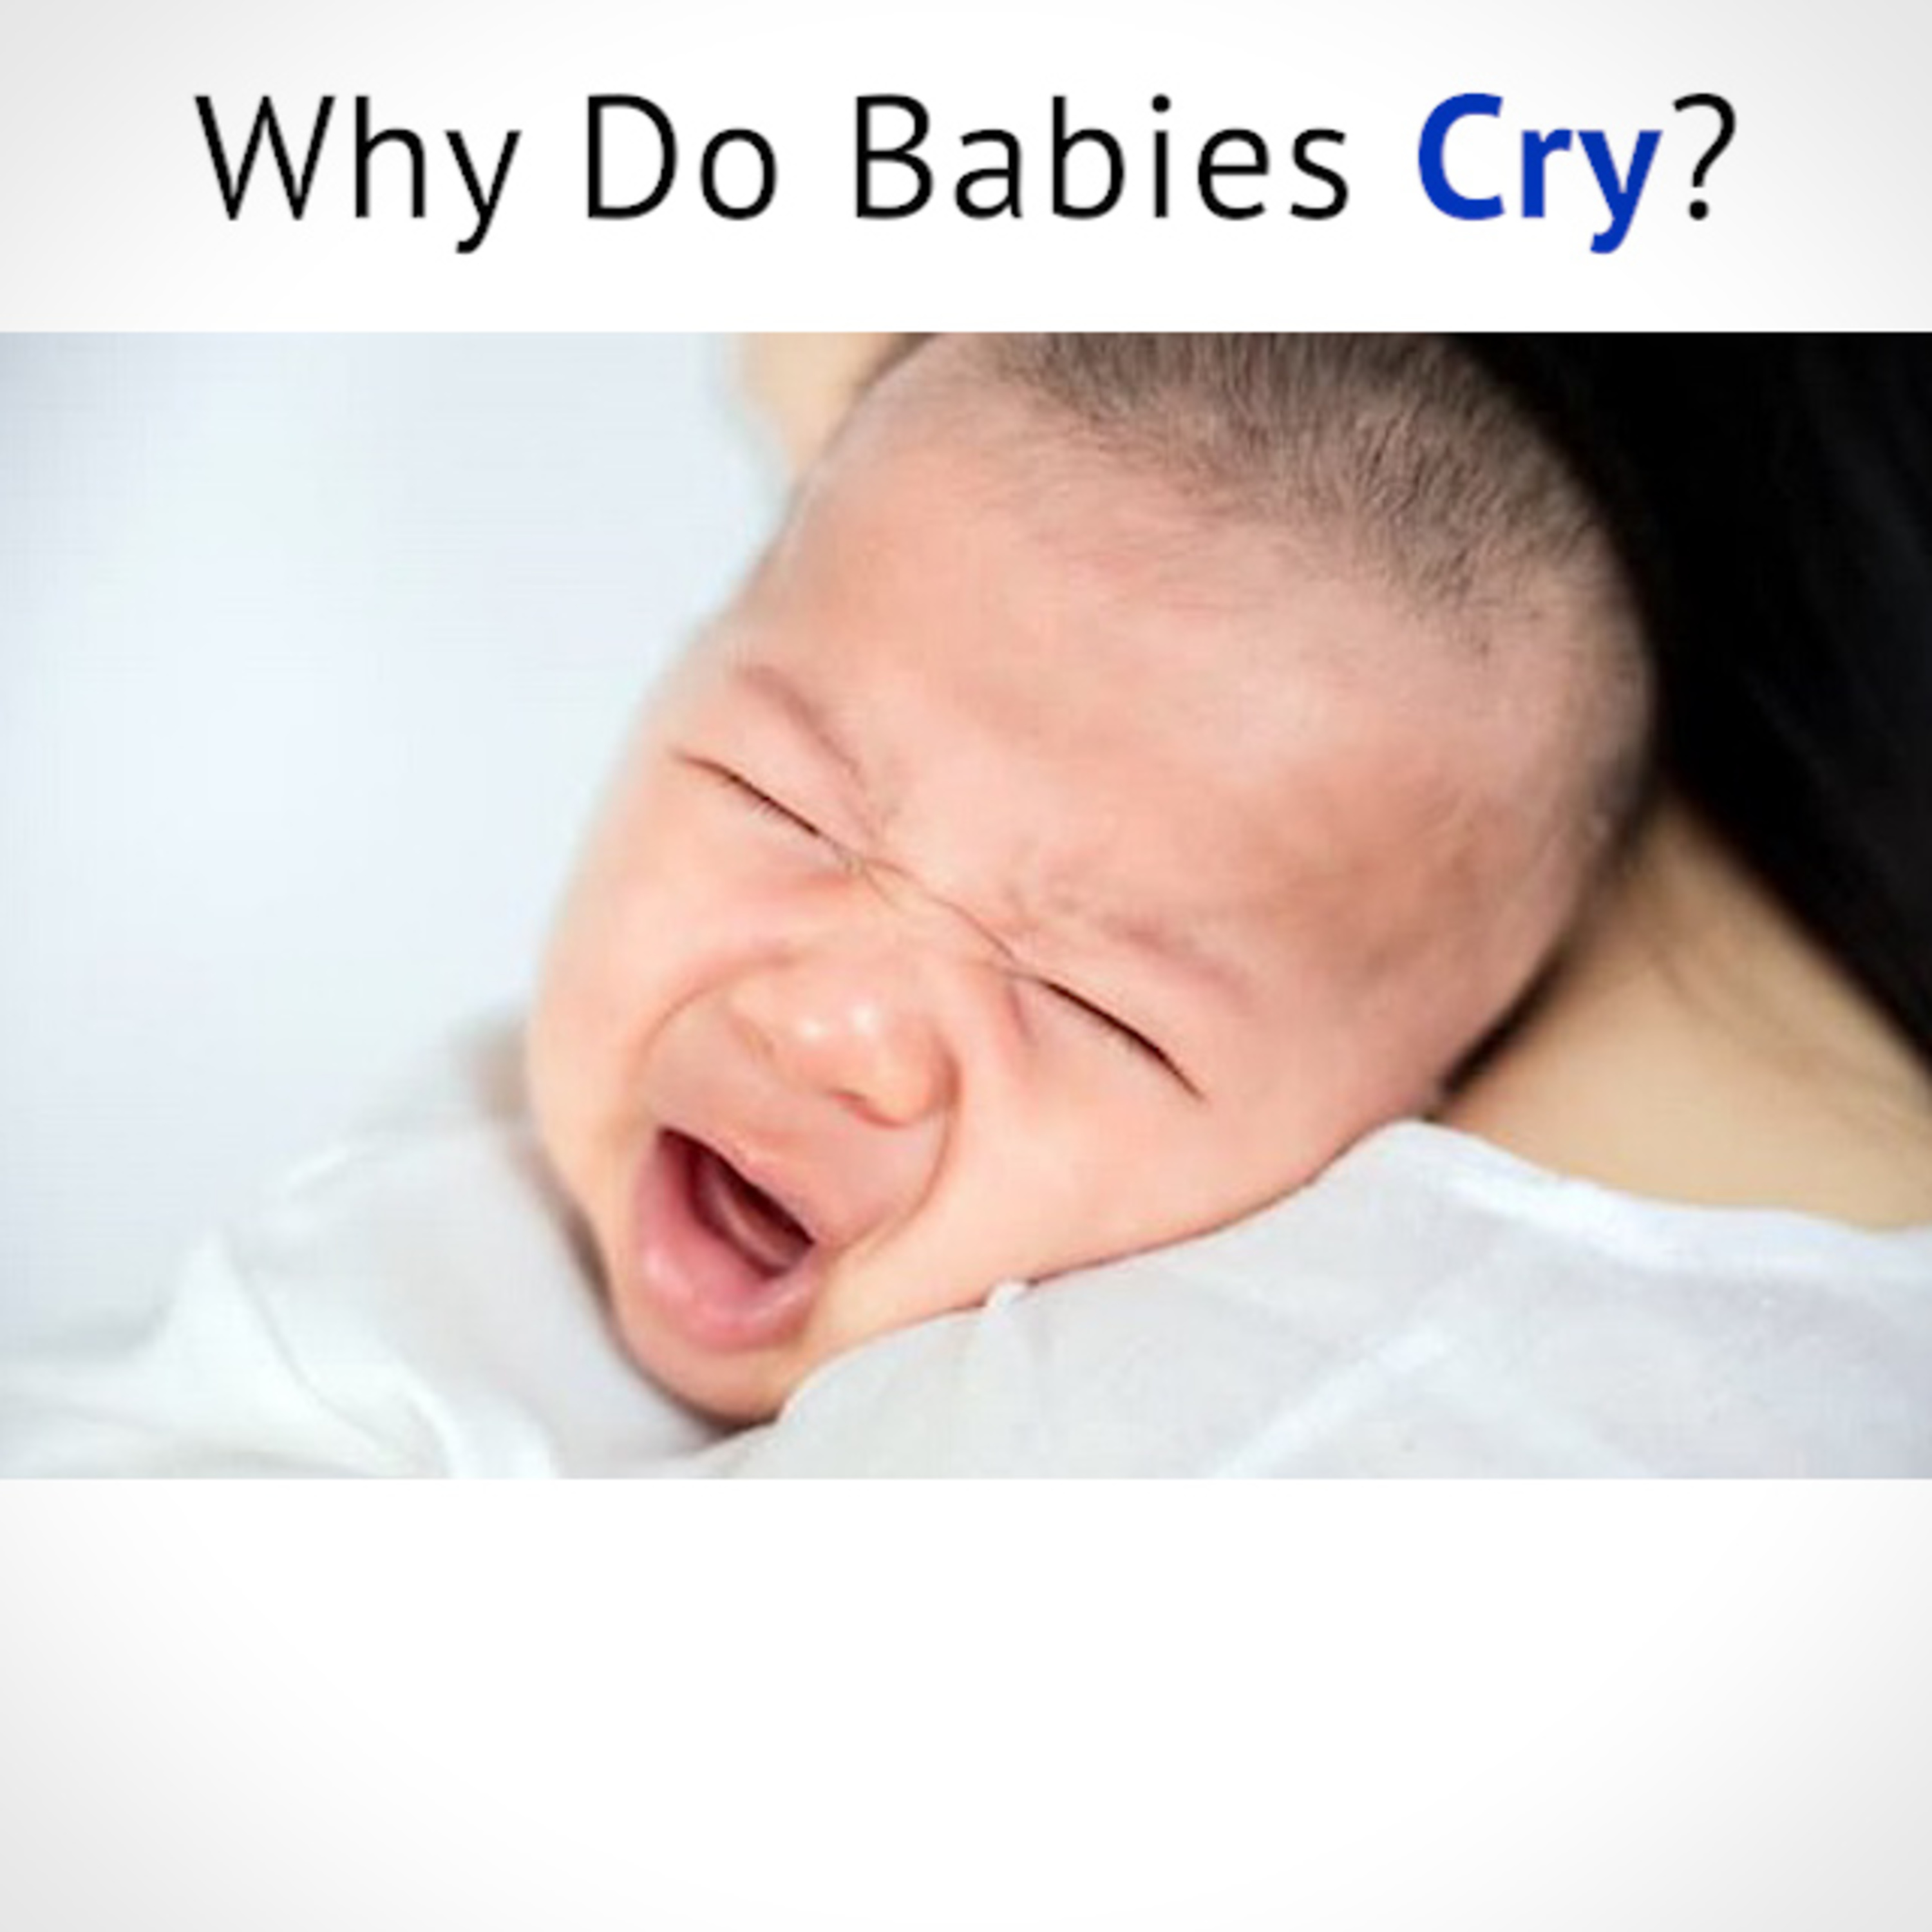 Why do babies CRY?